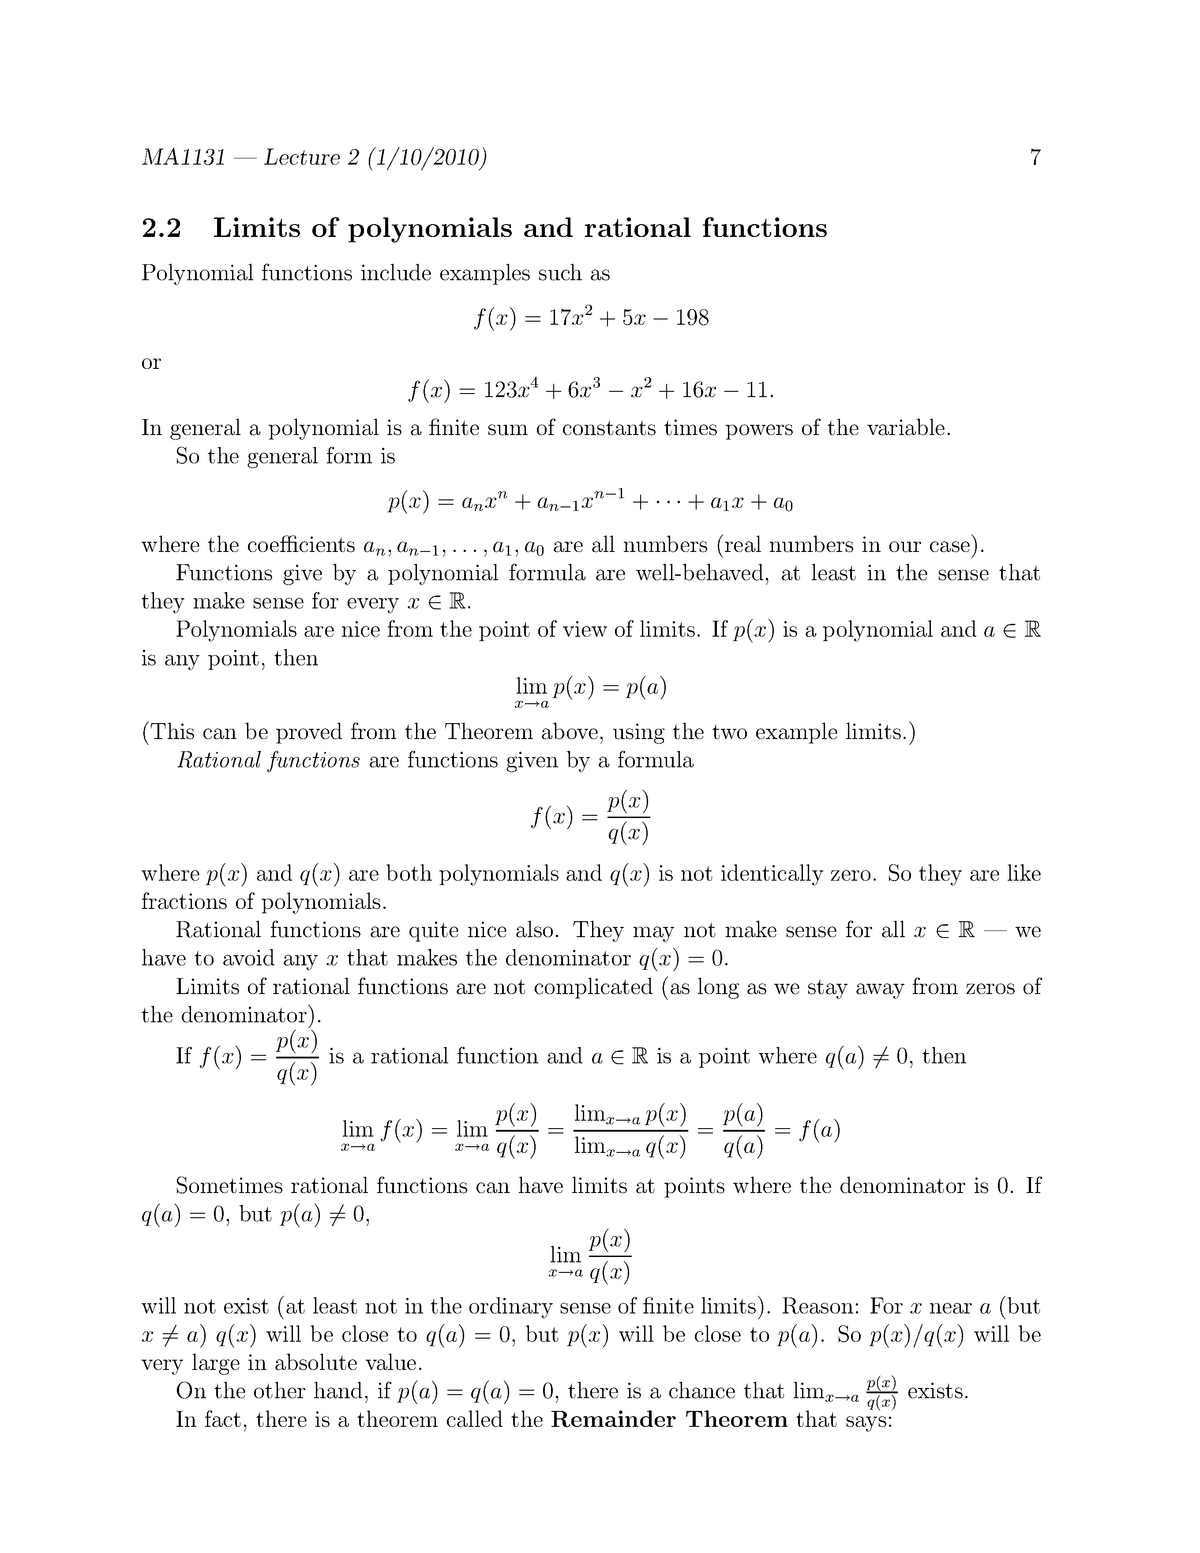 MA1132 2010-2011 Lecture Notes 2 - Limits of polynomials and